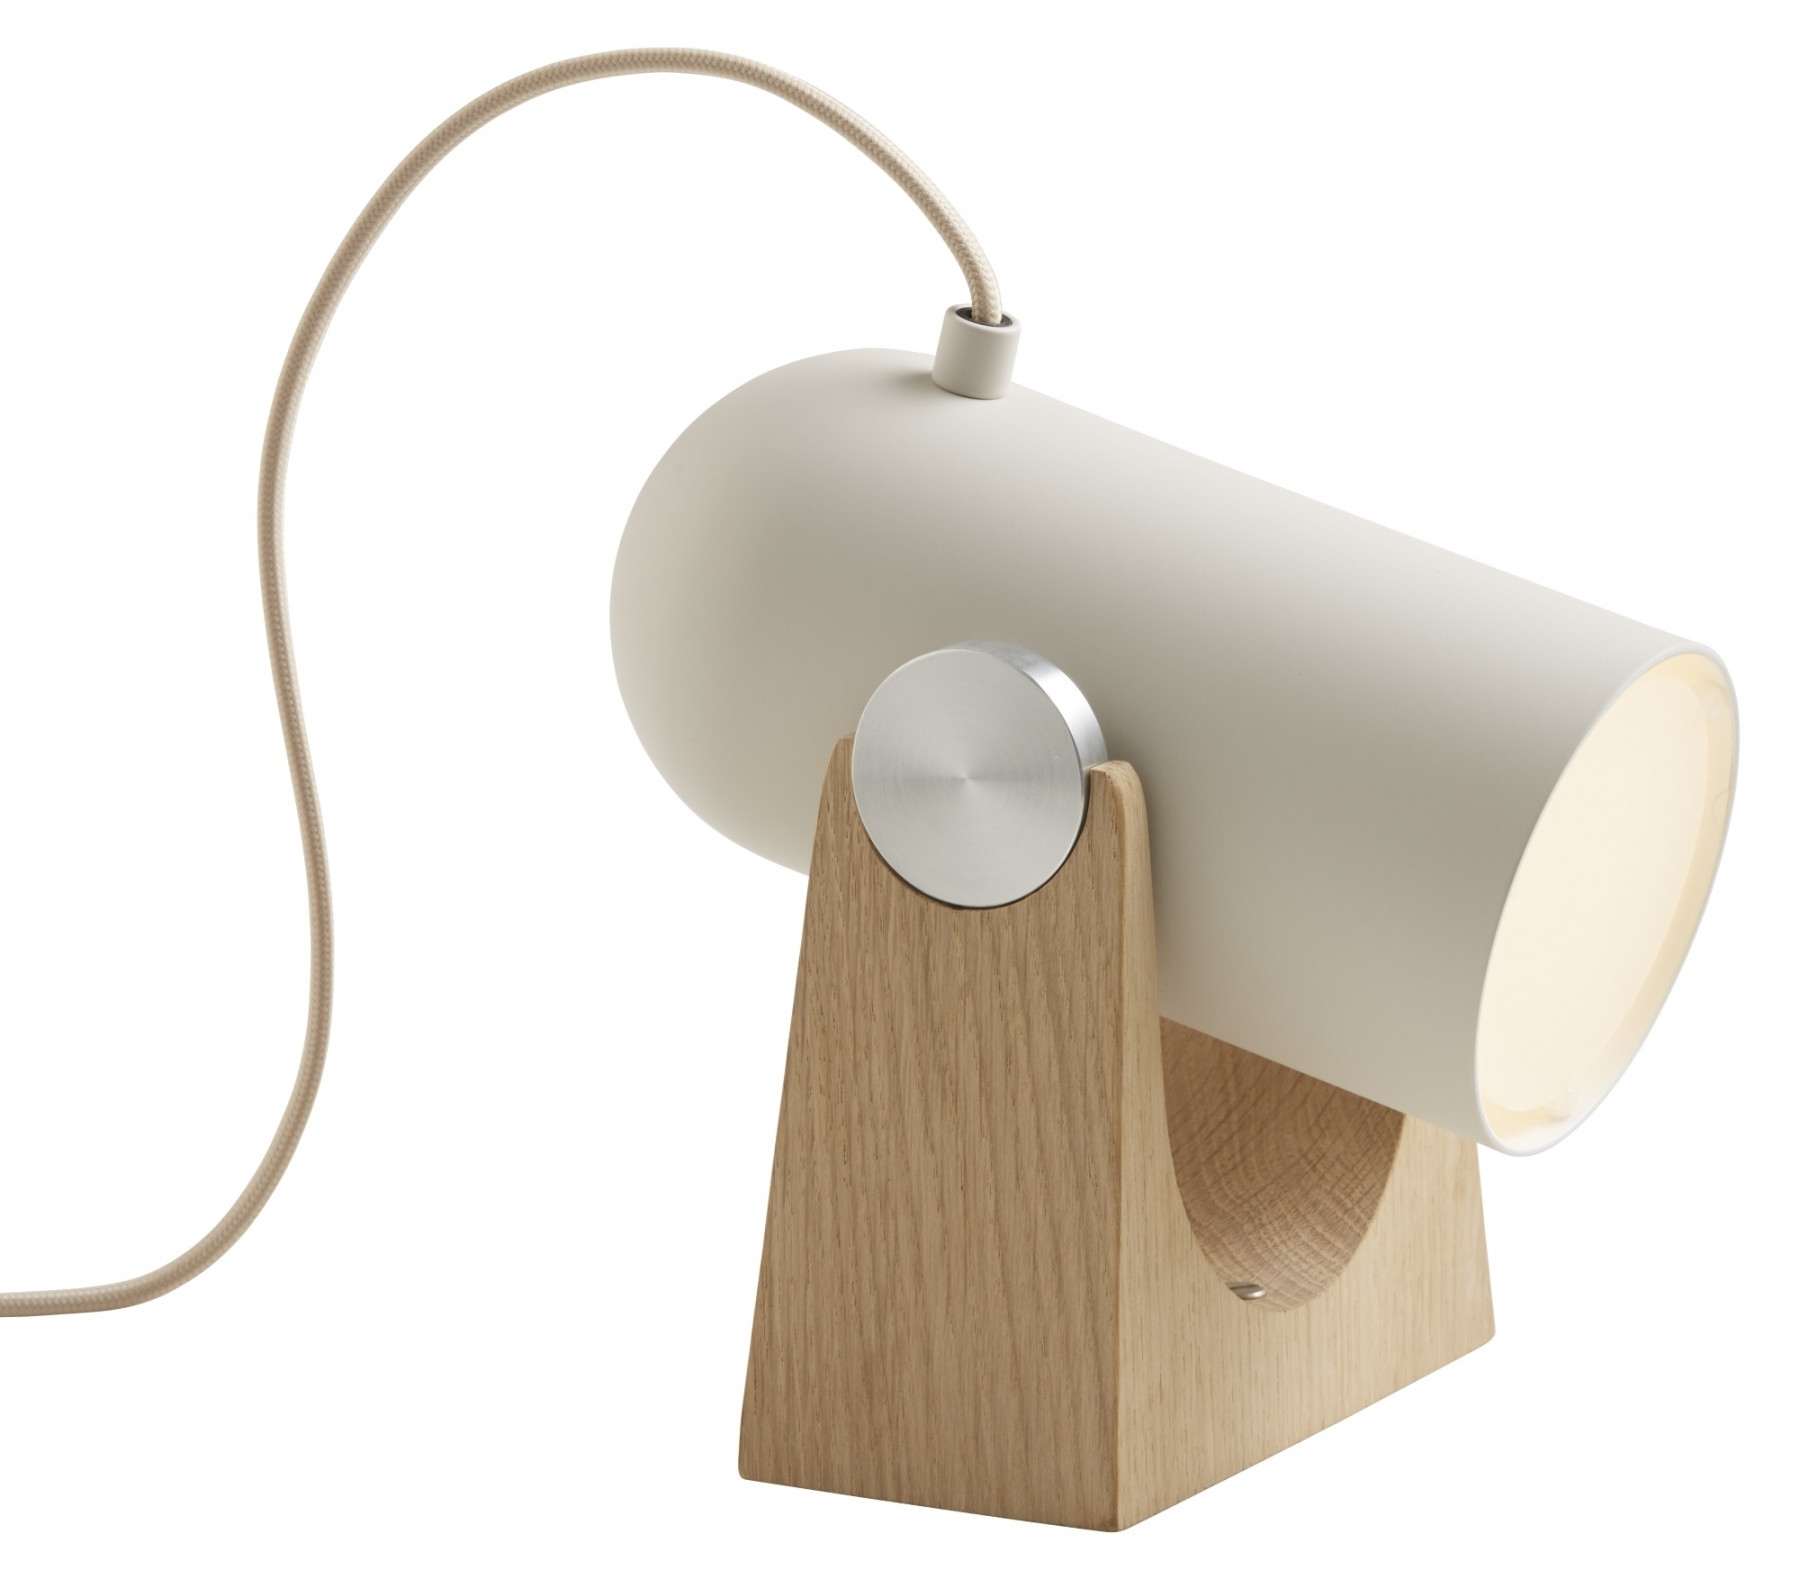 Preferred Carronade Table Or Wall Lamp Le Klint Intended For Rona Outdoor Wall Lighting (View 15 of 20)